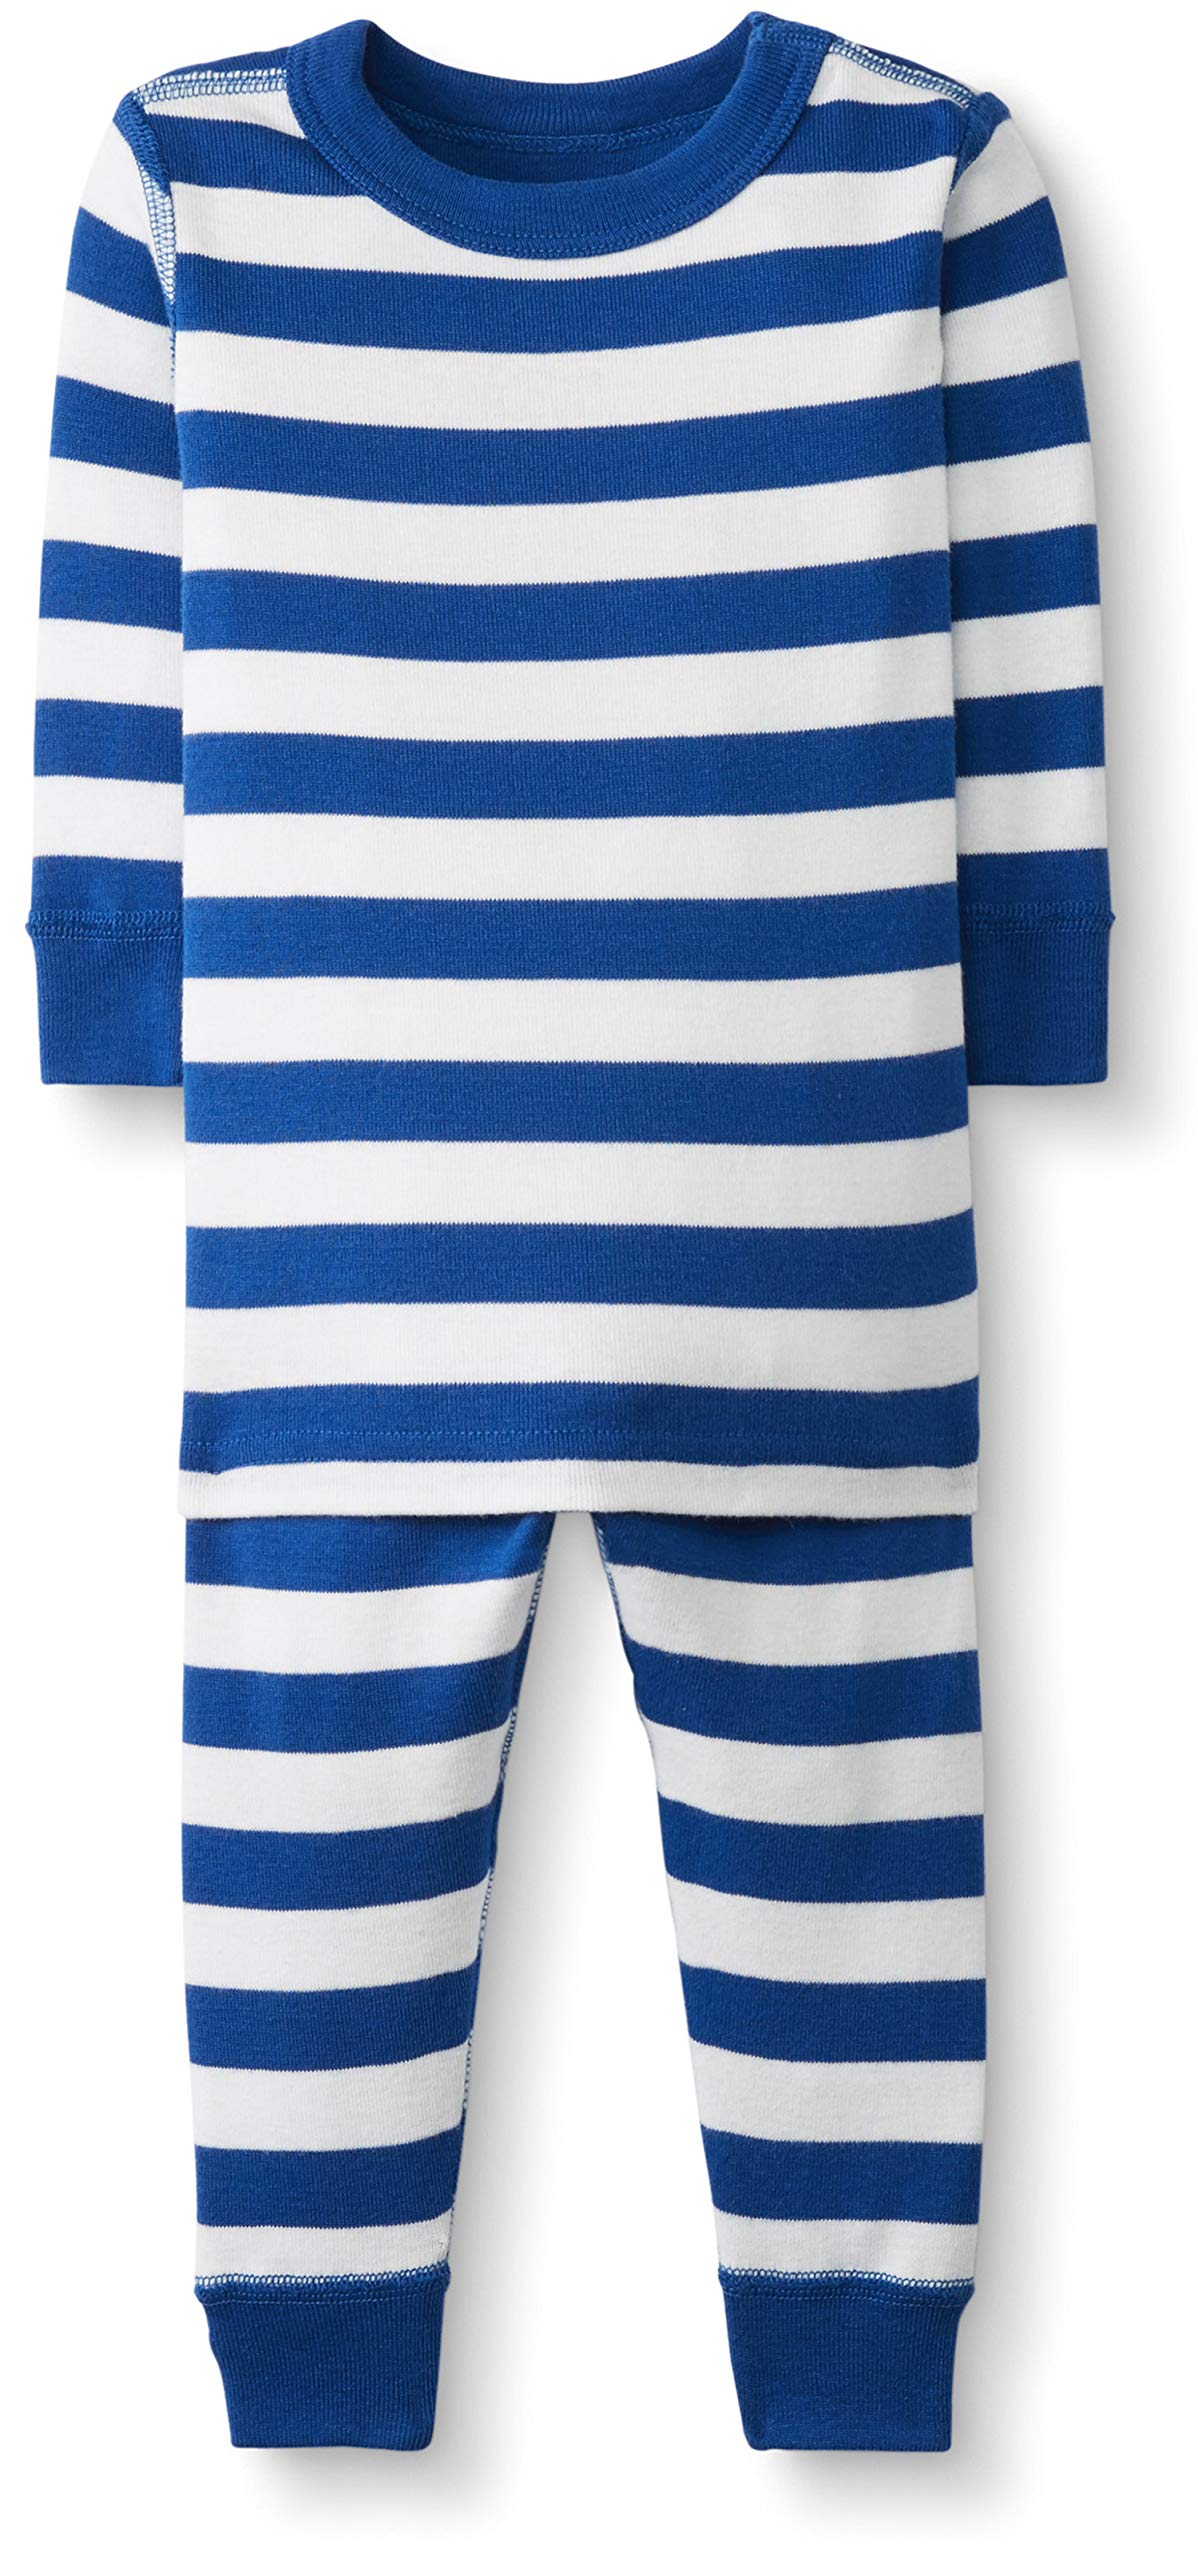 Hanna Andersson Baby/Toddler 2-Piece Organic Cotton Pajama Set Baltic Blue/Hanna White-60 by Hanna Andersson